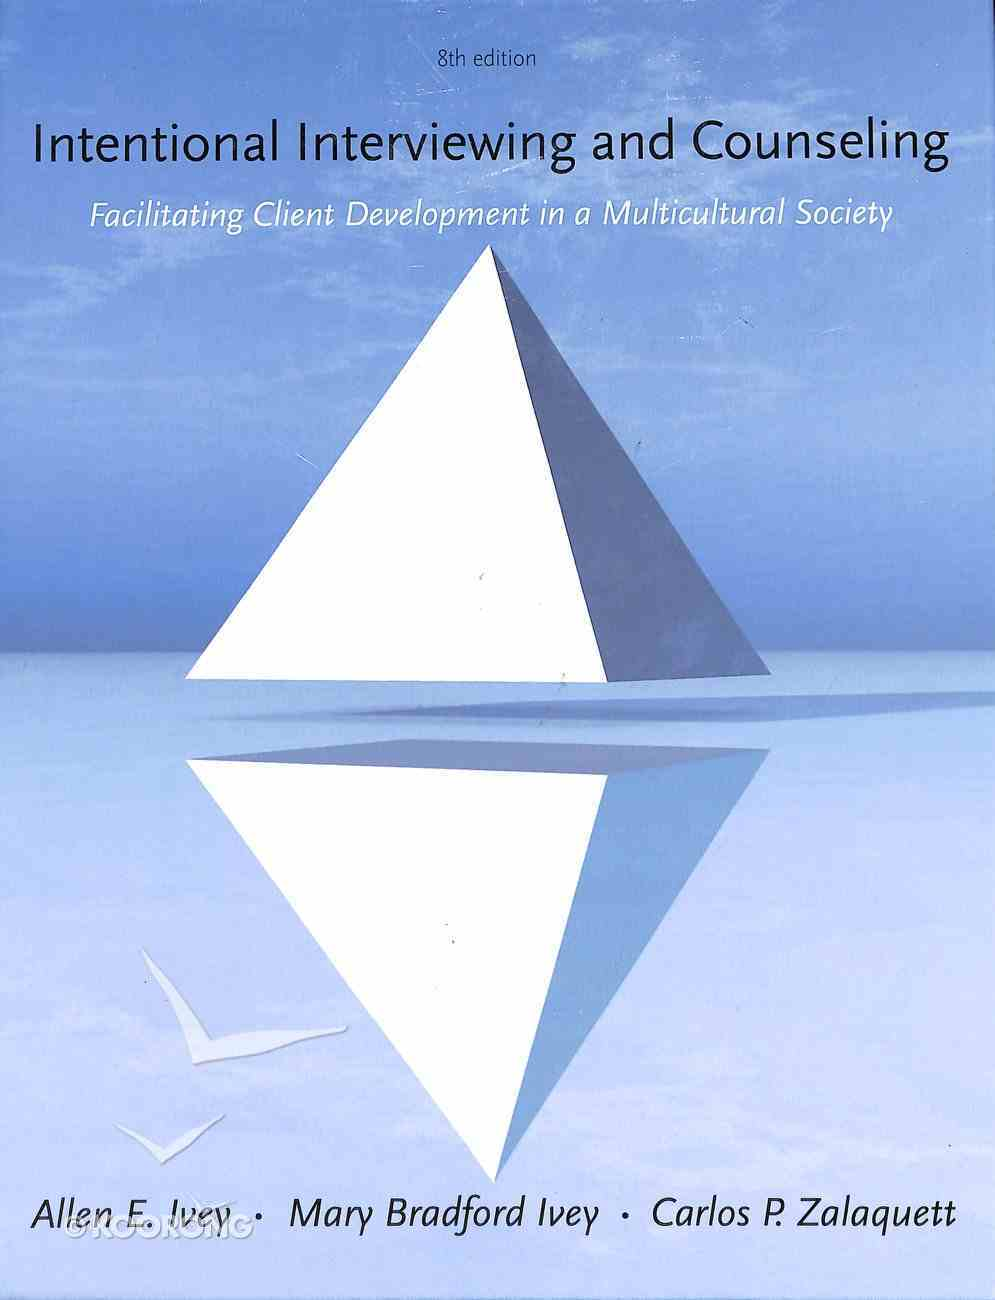 Intentional Interviewing and Counseling Paperback